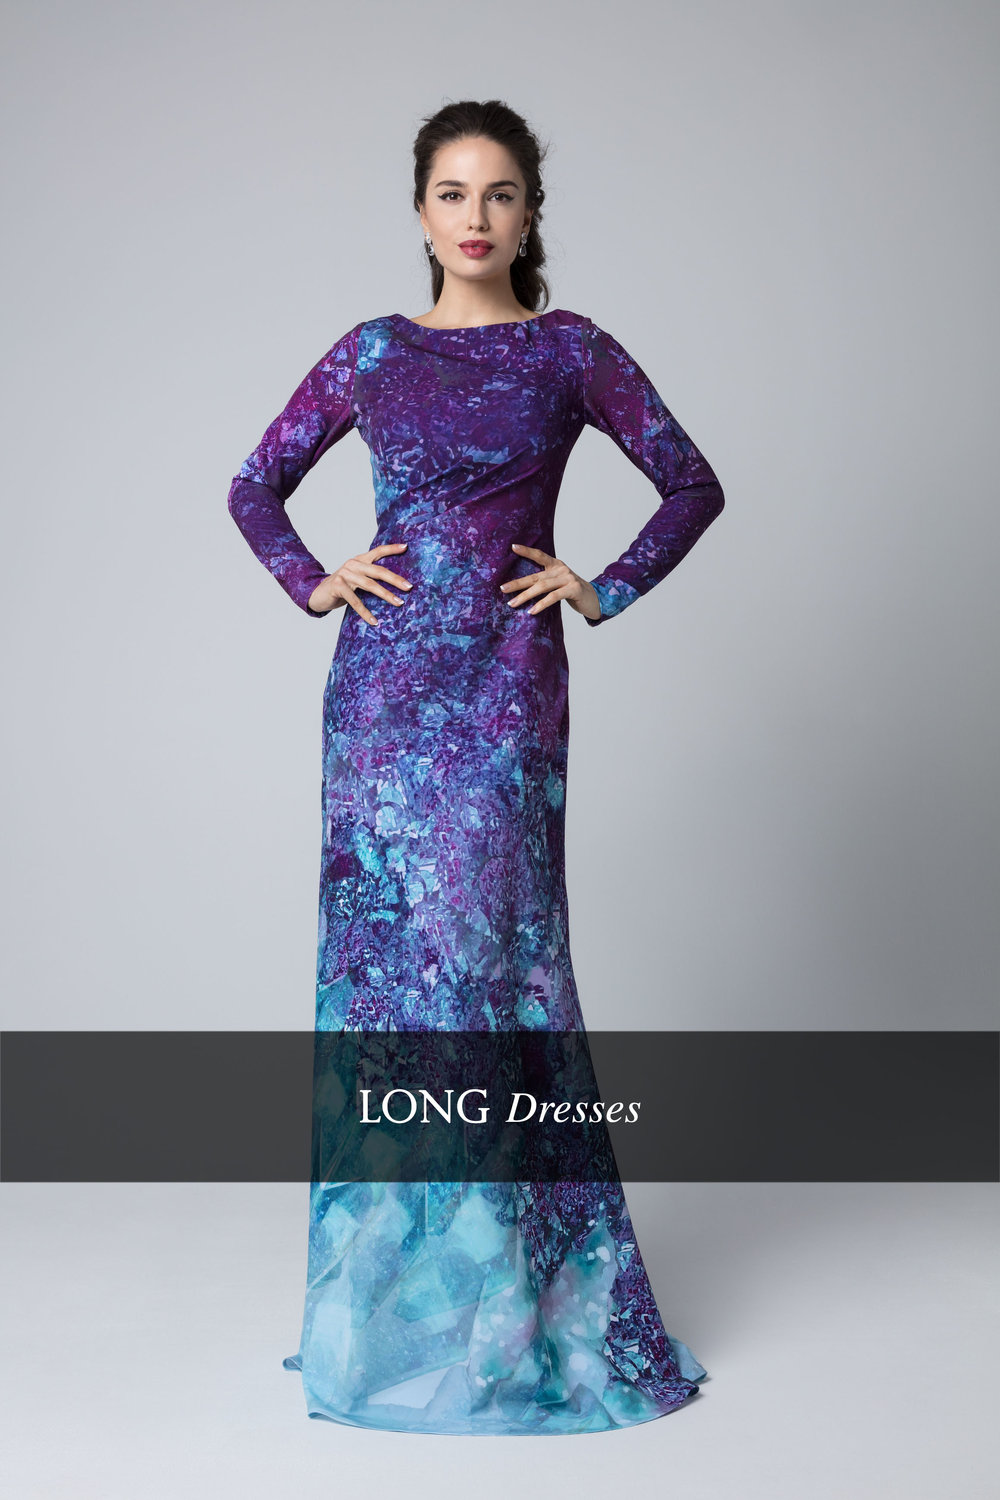 Bloque Quartz Long dresses.jpg